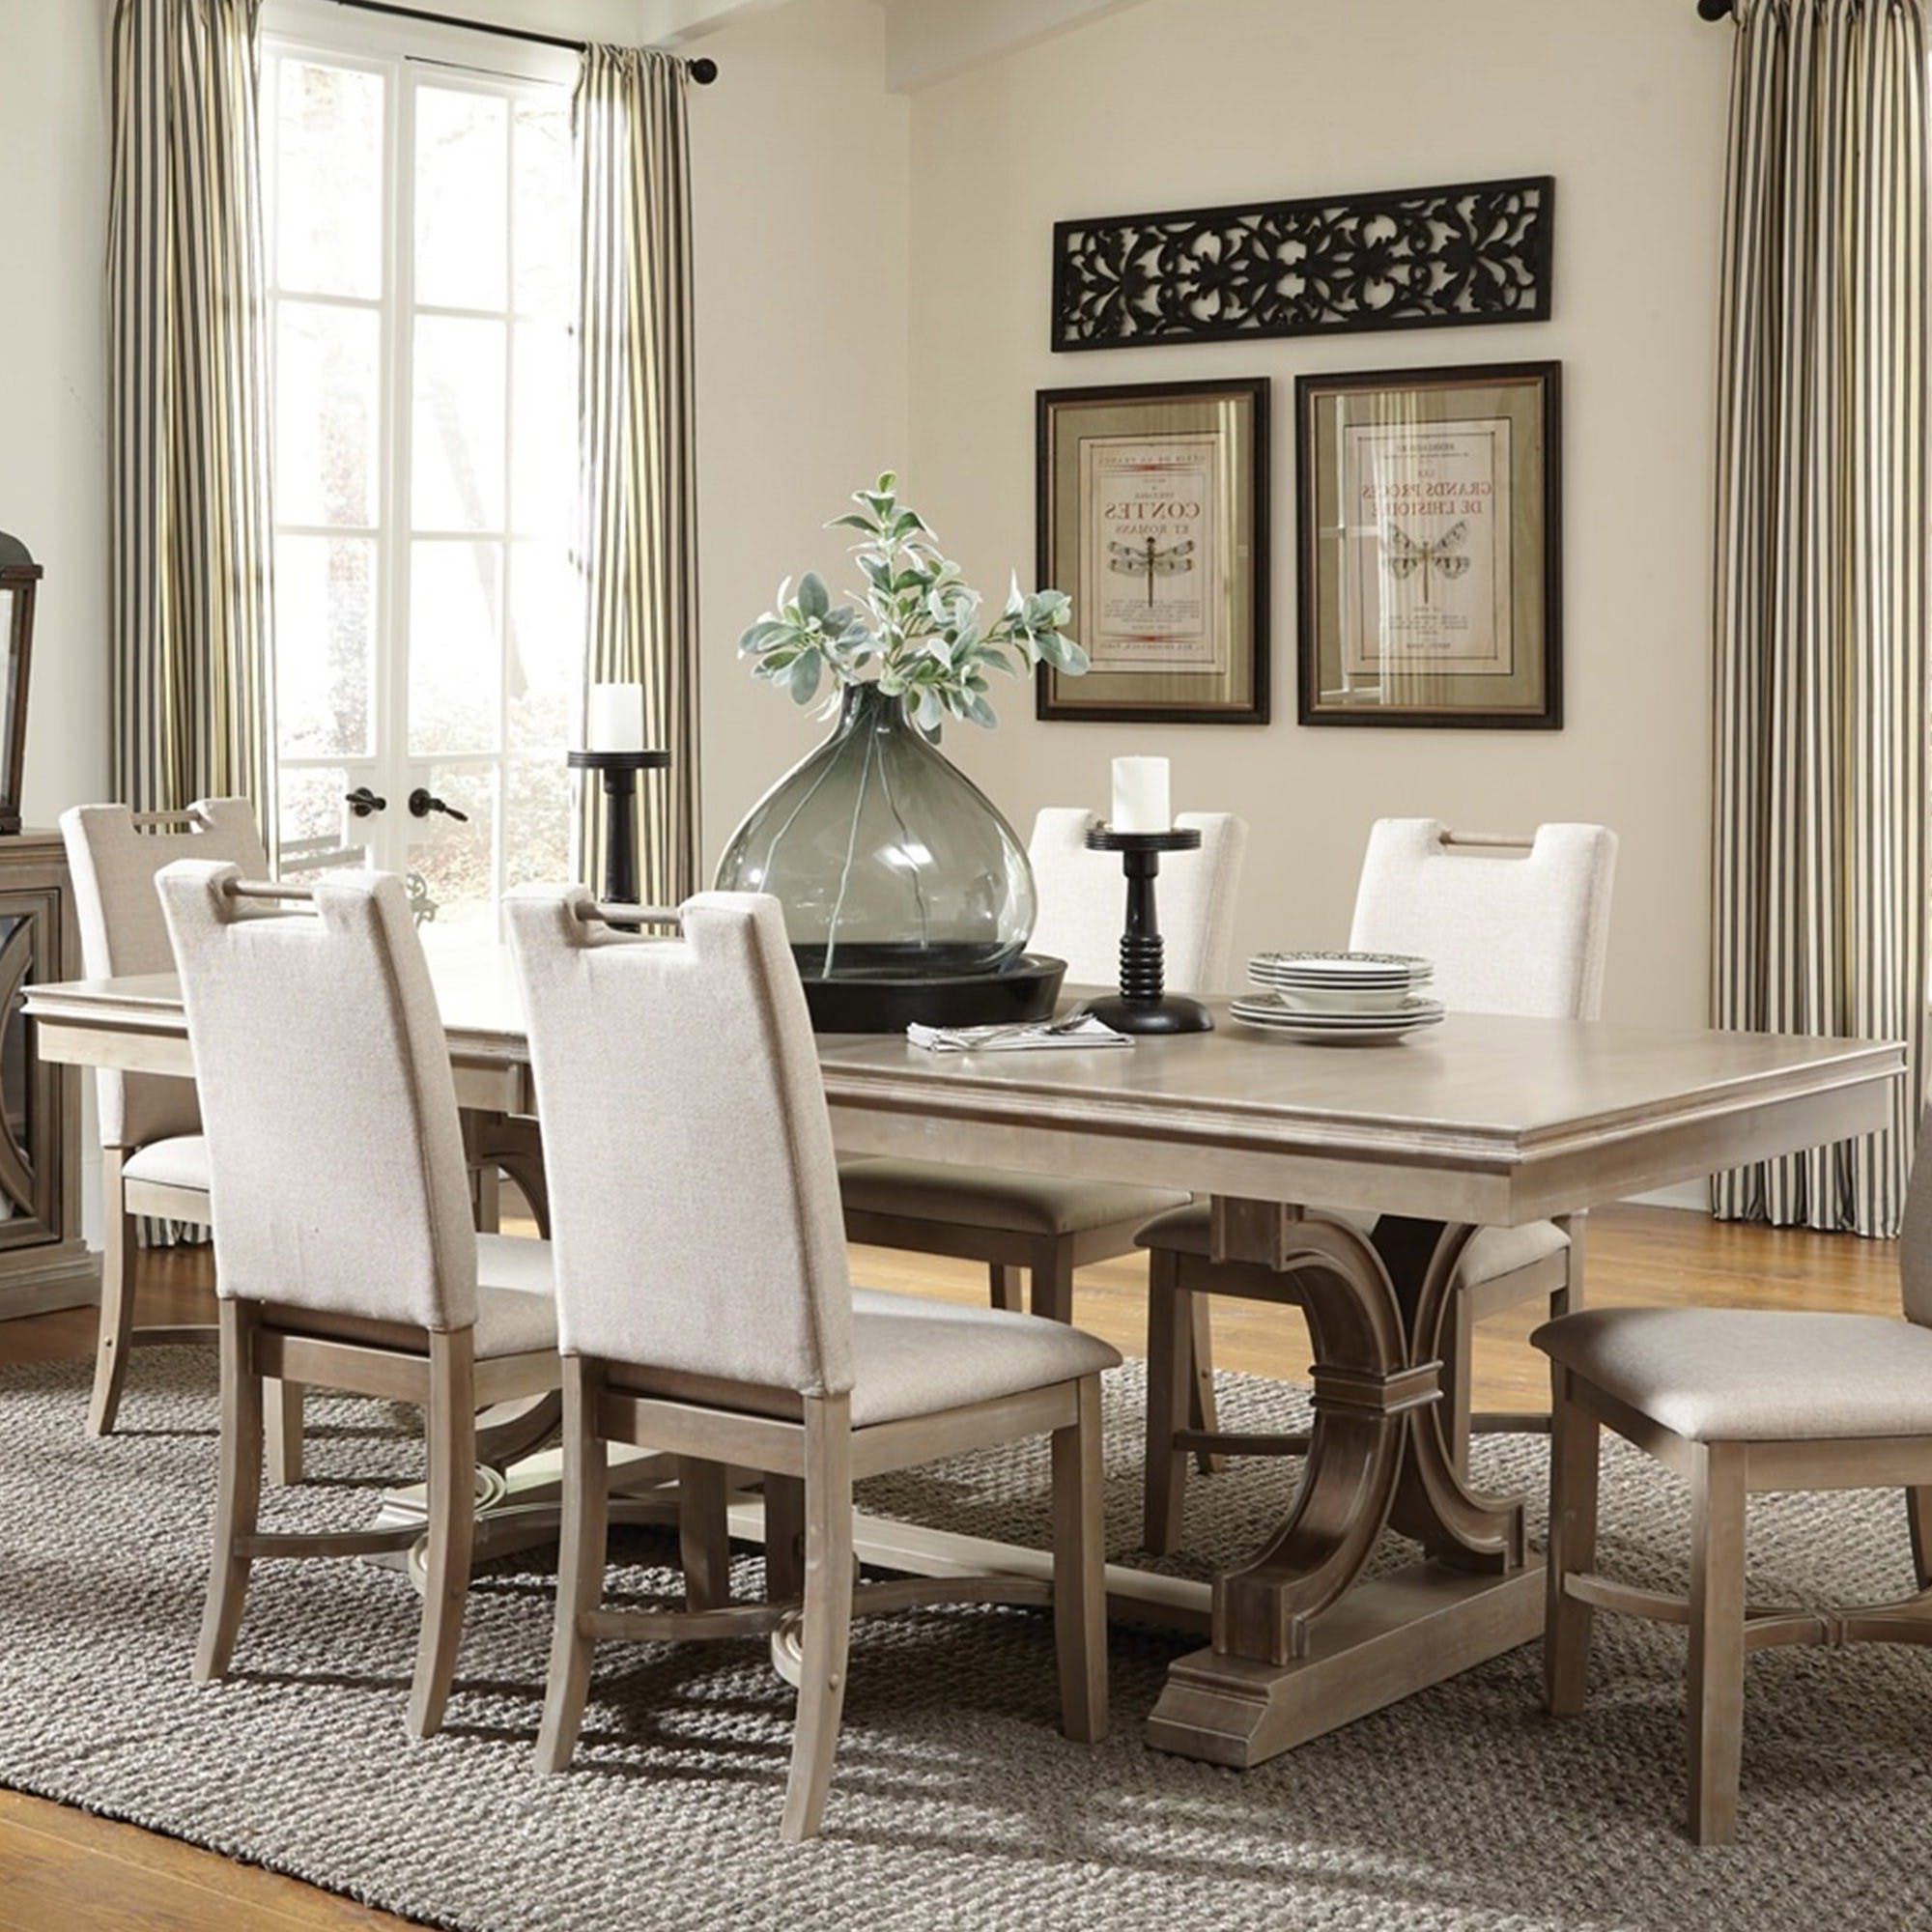 Sonoma Rectangular Dining Table – Bernie & Phyl's Furniture With Regard To Preferred Transitional Rectangular Dining Tables (View 18 of 30)